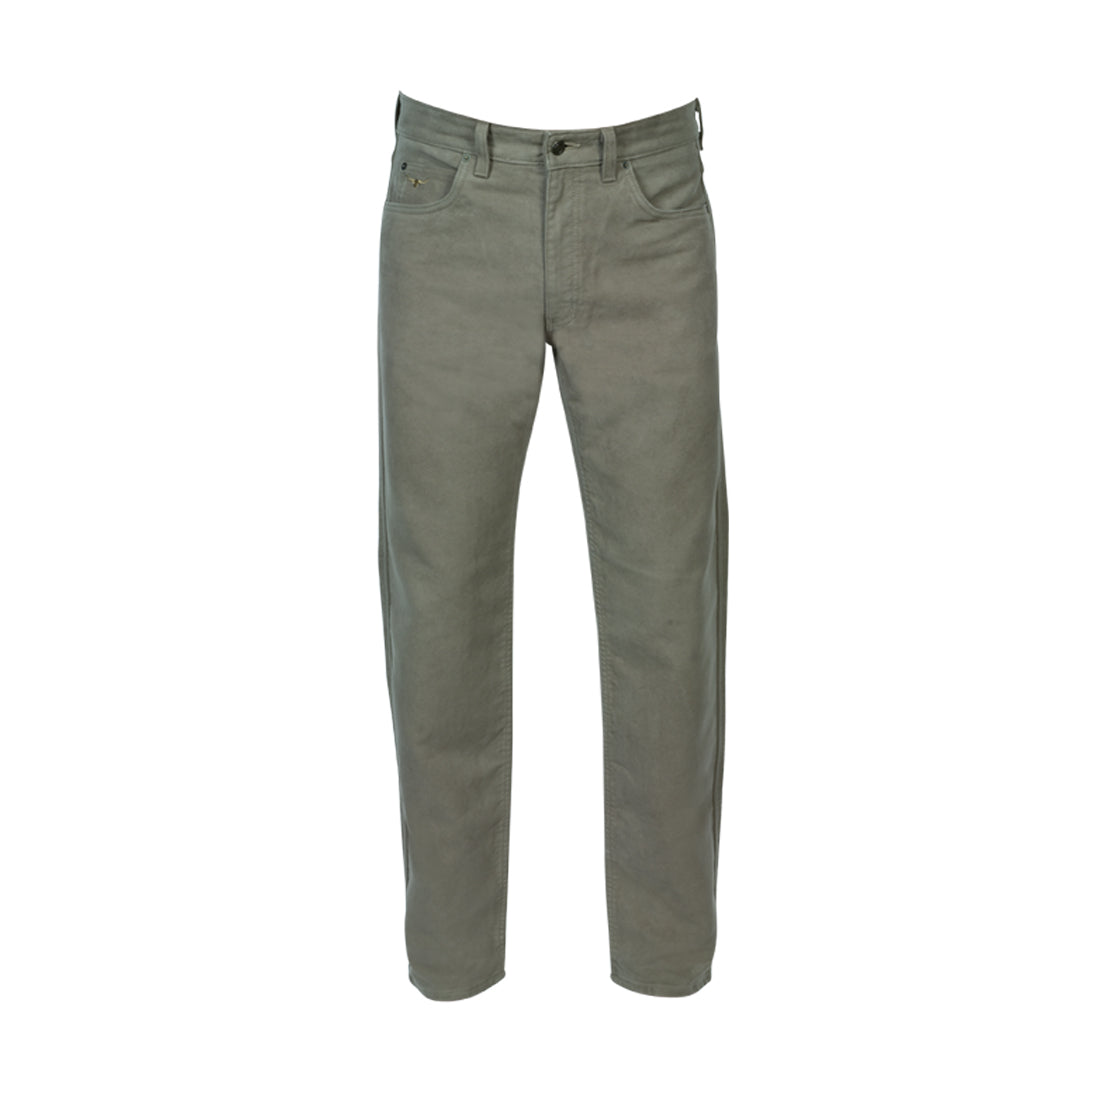 R M Williams Luxury Moleskin Trousers for Men in Doeskin